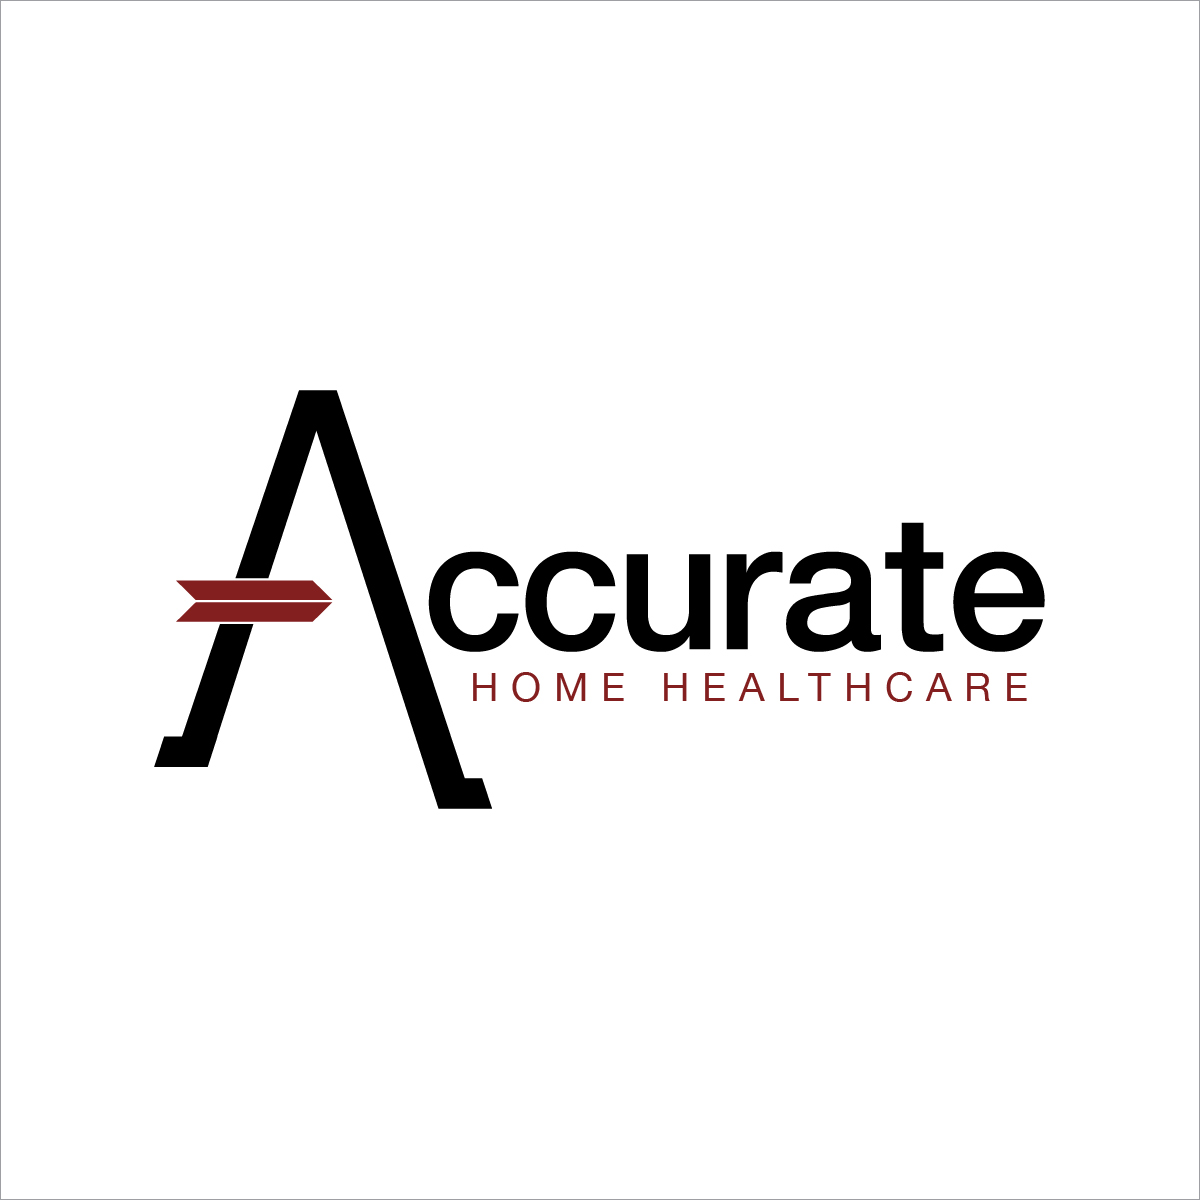 Accurate Home Healthcare